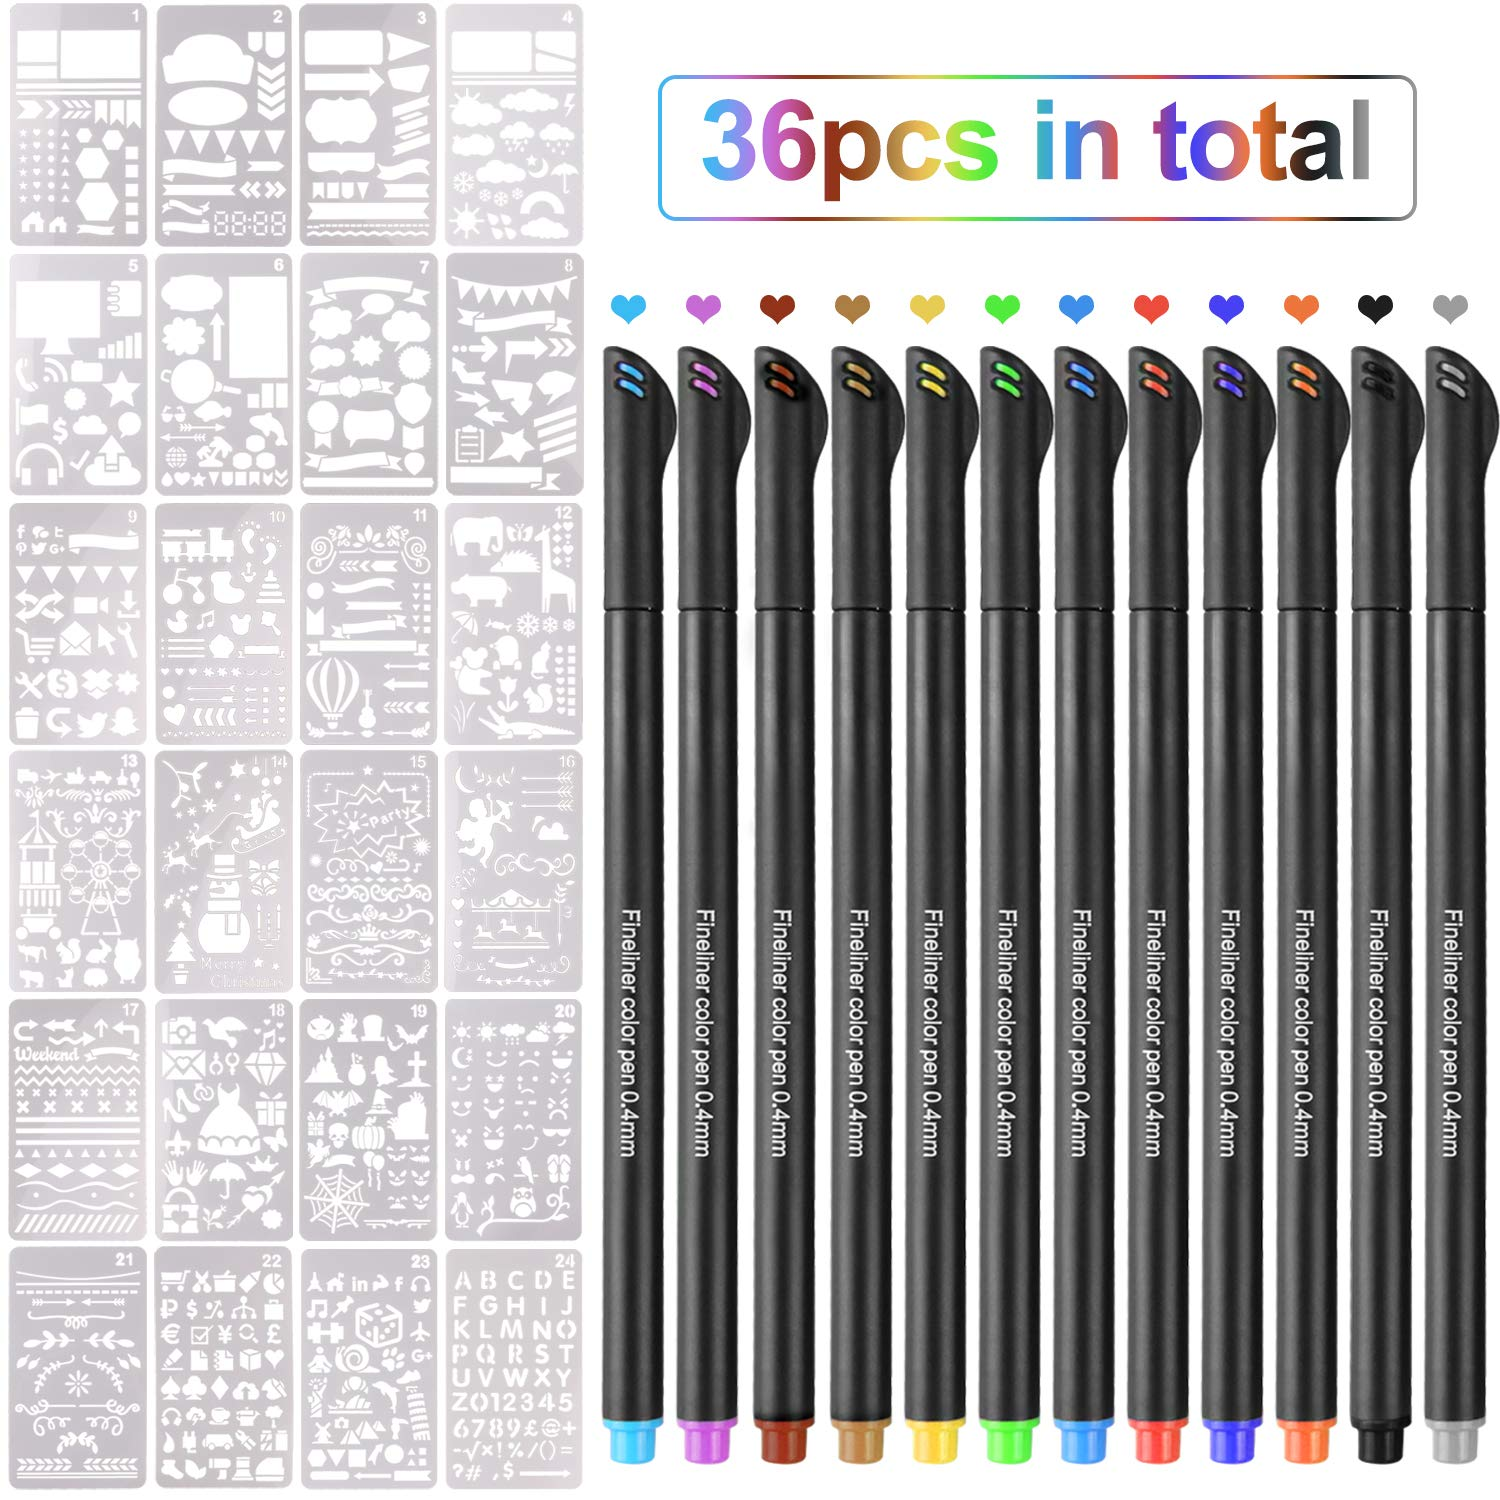 12  fineliner penne colorate con 24  plastica Bullet Gazzetta forniture stencil modelli per DIY disegno Journal notebook diario Gosear